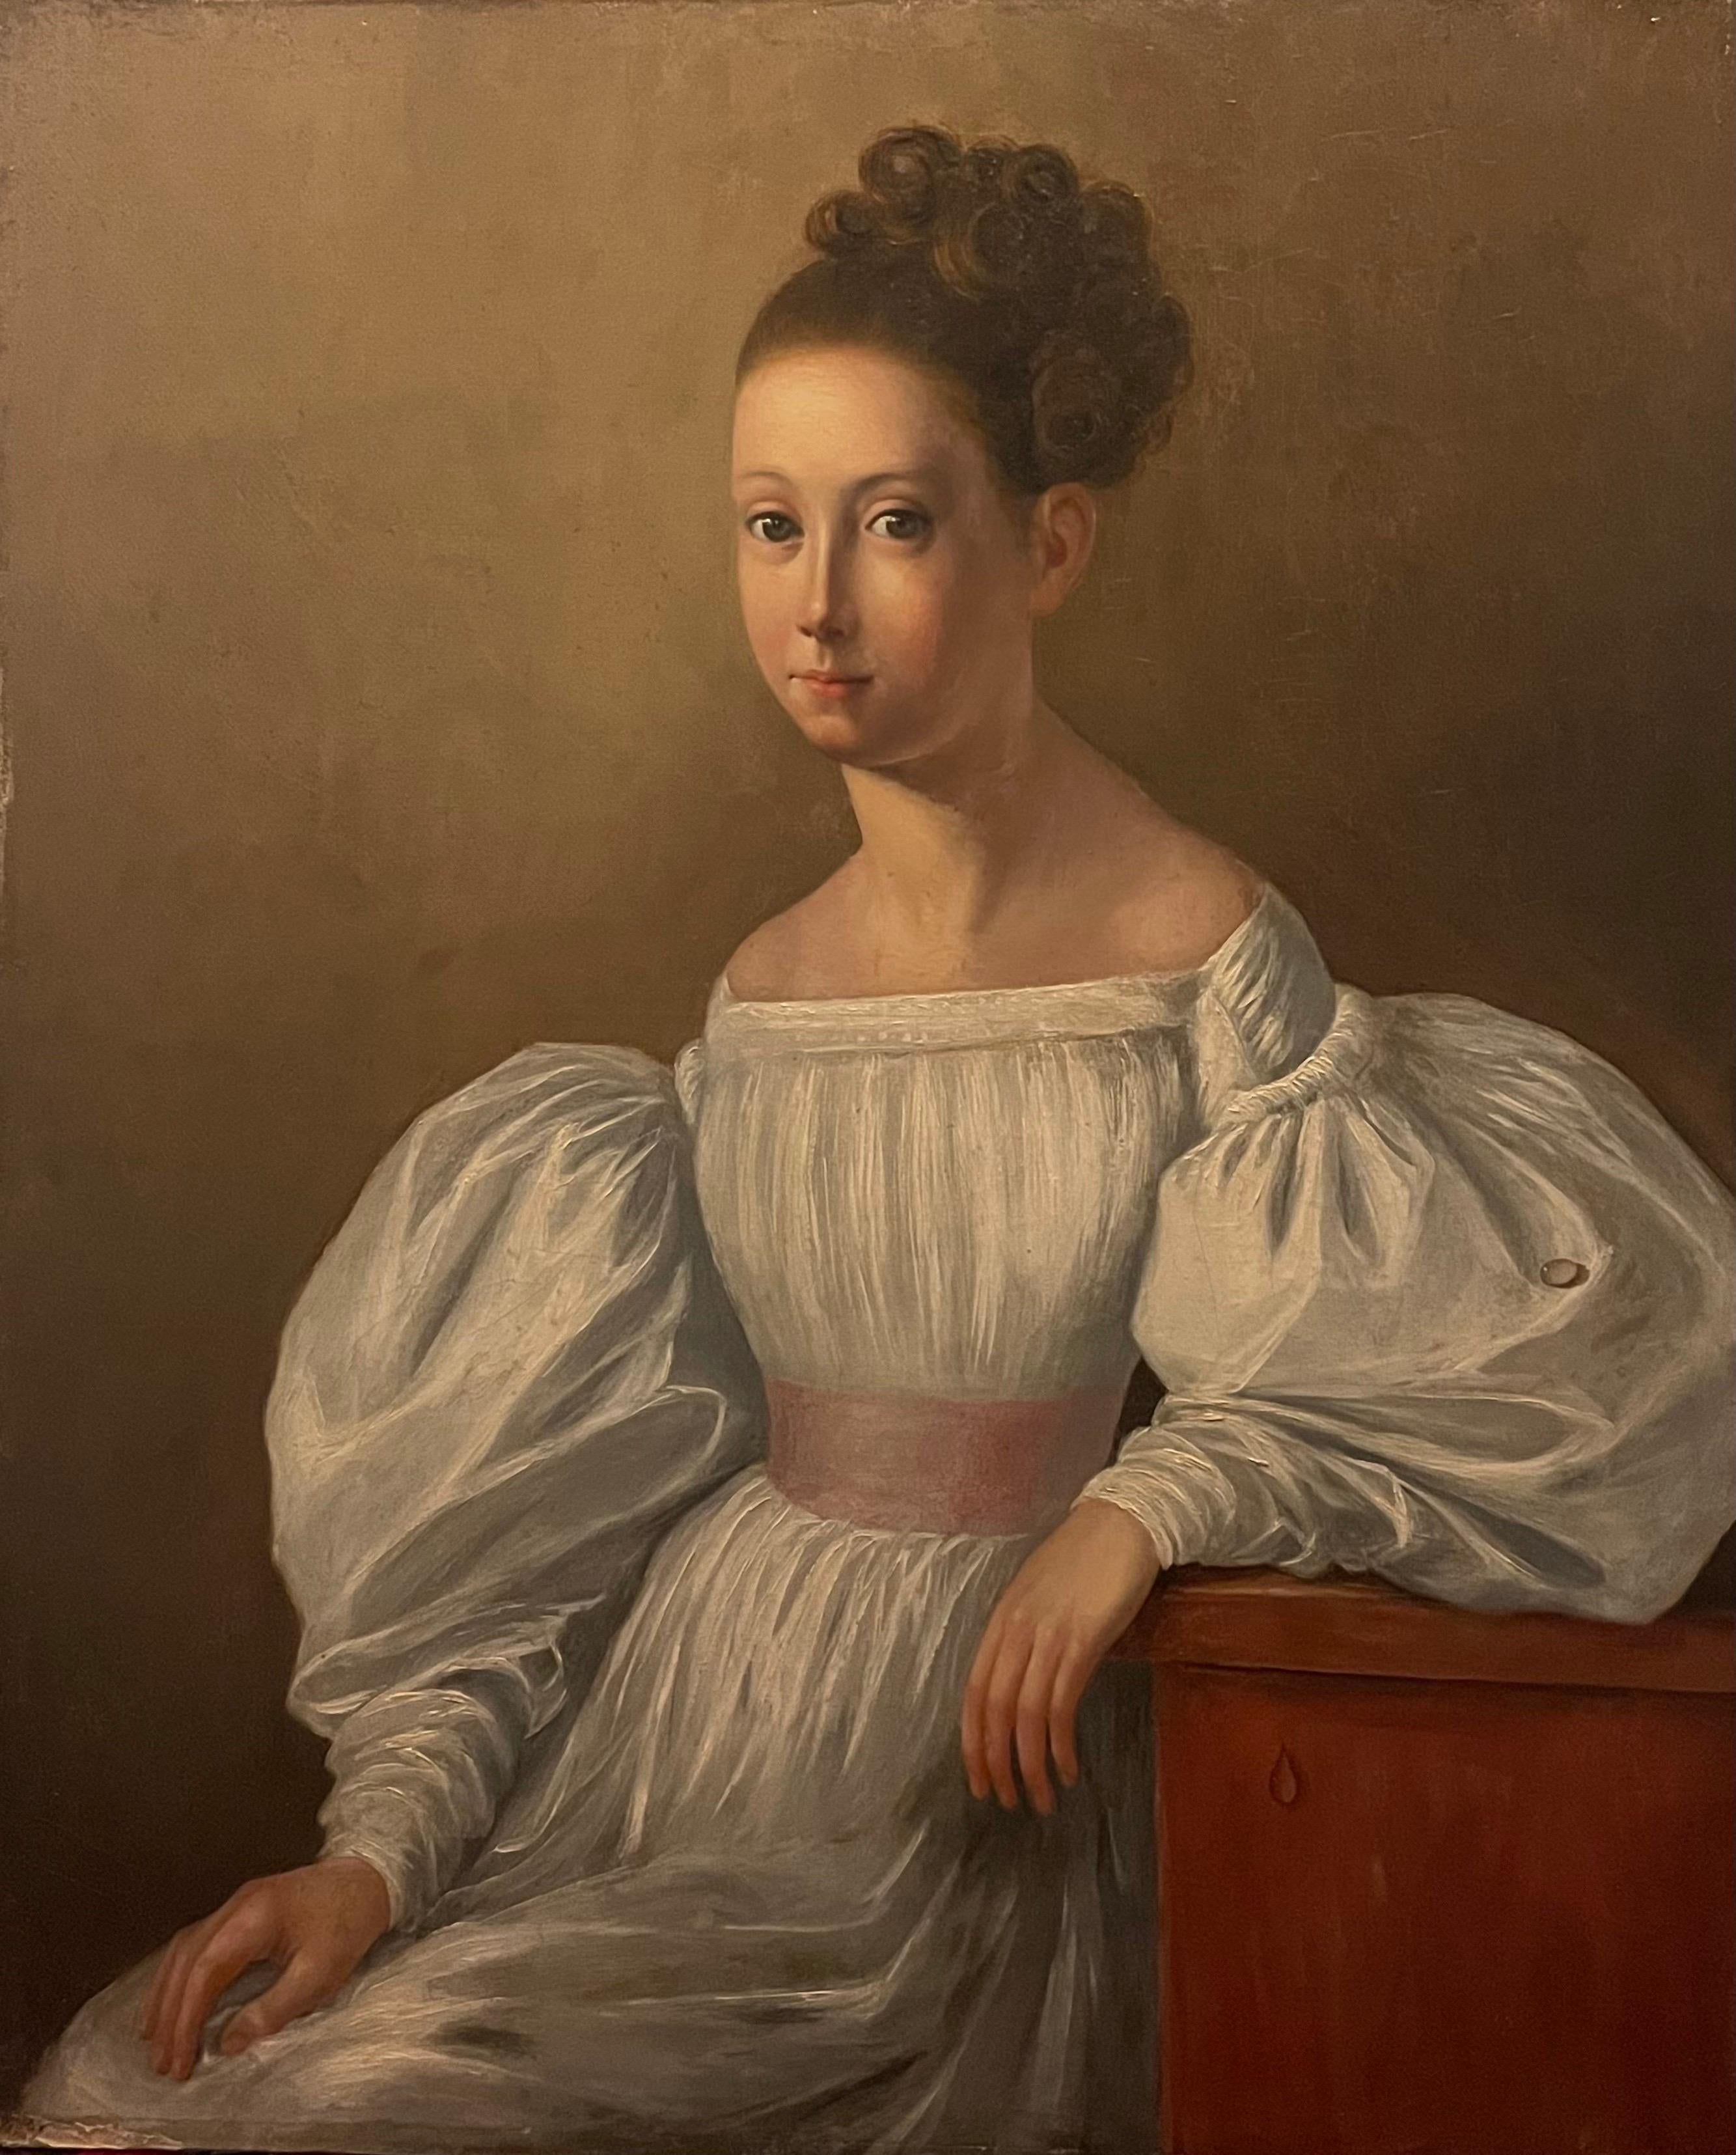 c.1800 FRENCH OIL PAINTING - PORTRAIT OF ARISTOCRATIC YOUNG LADY IN DRESS